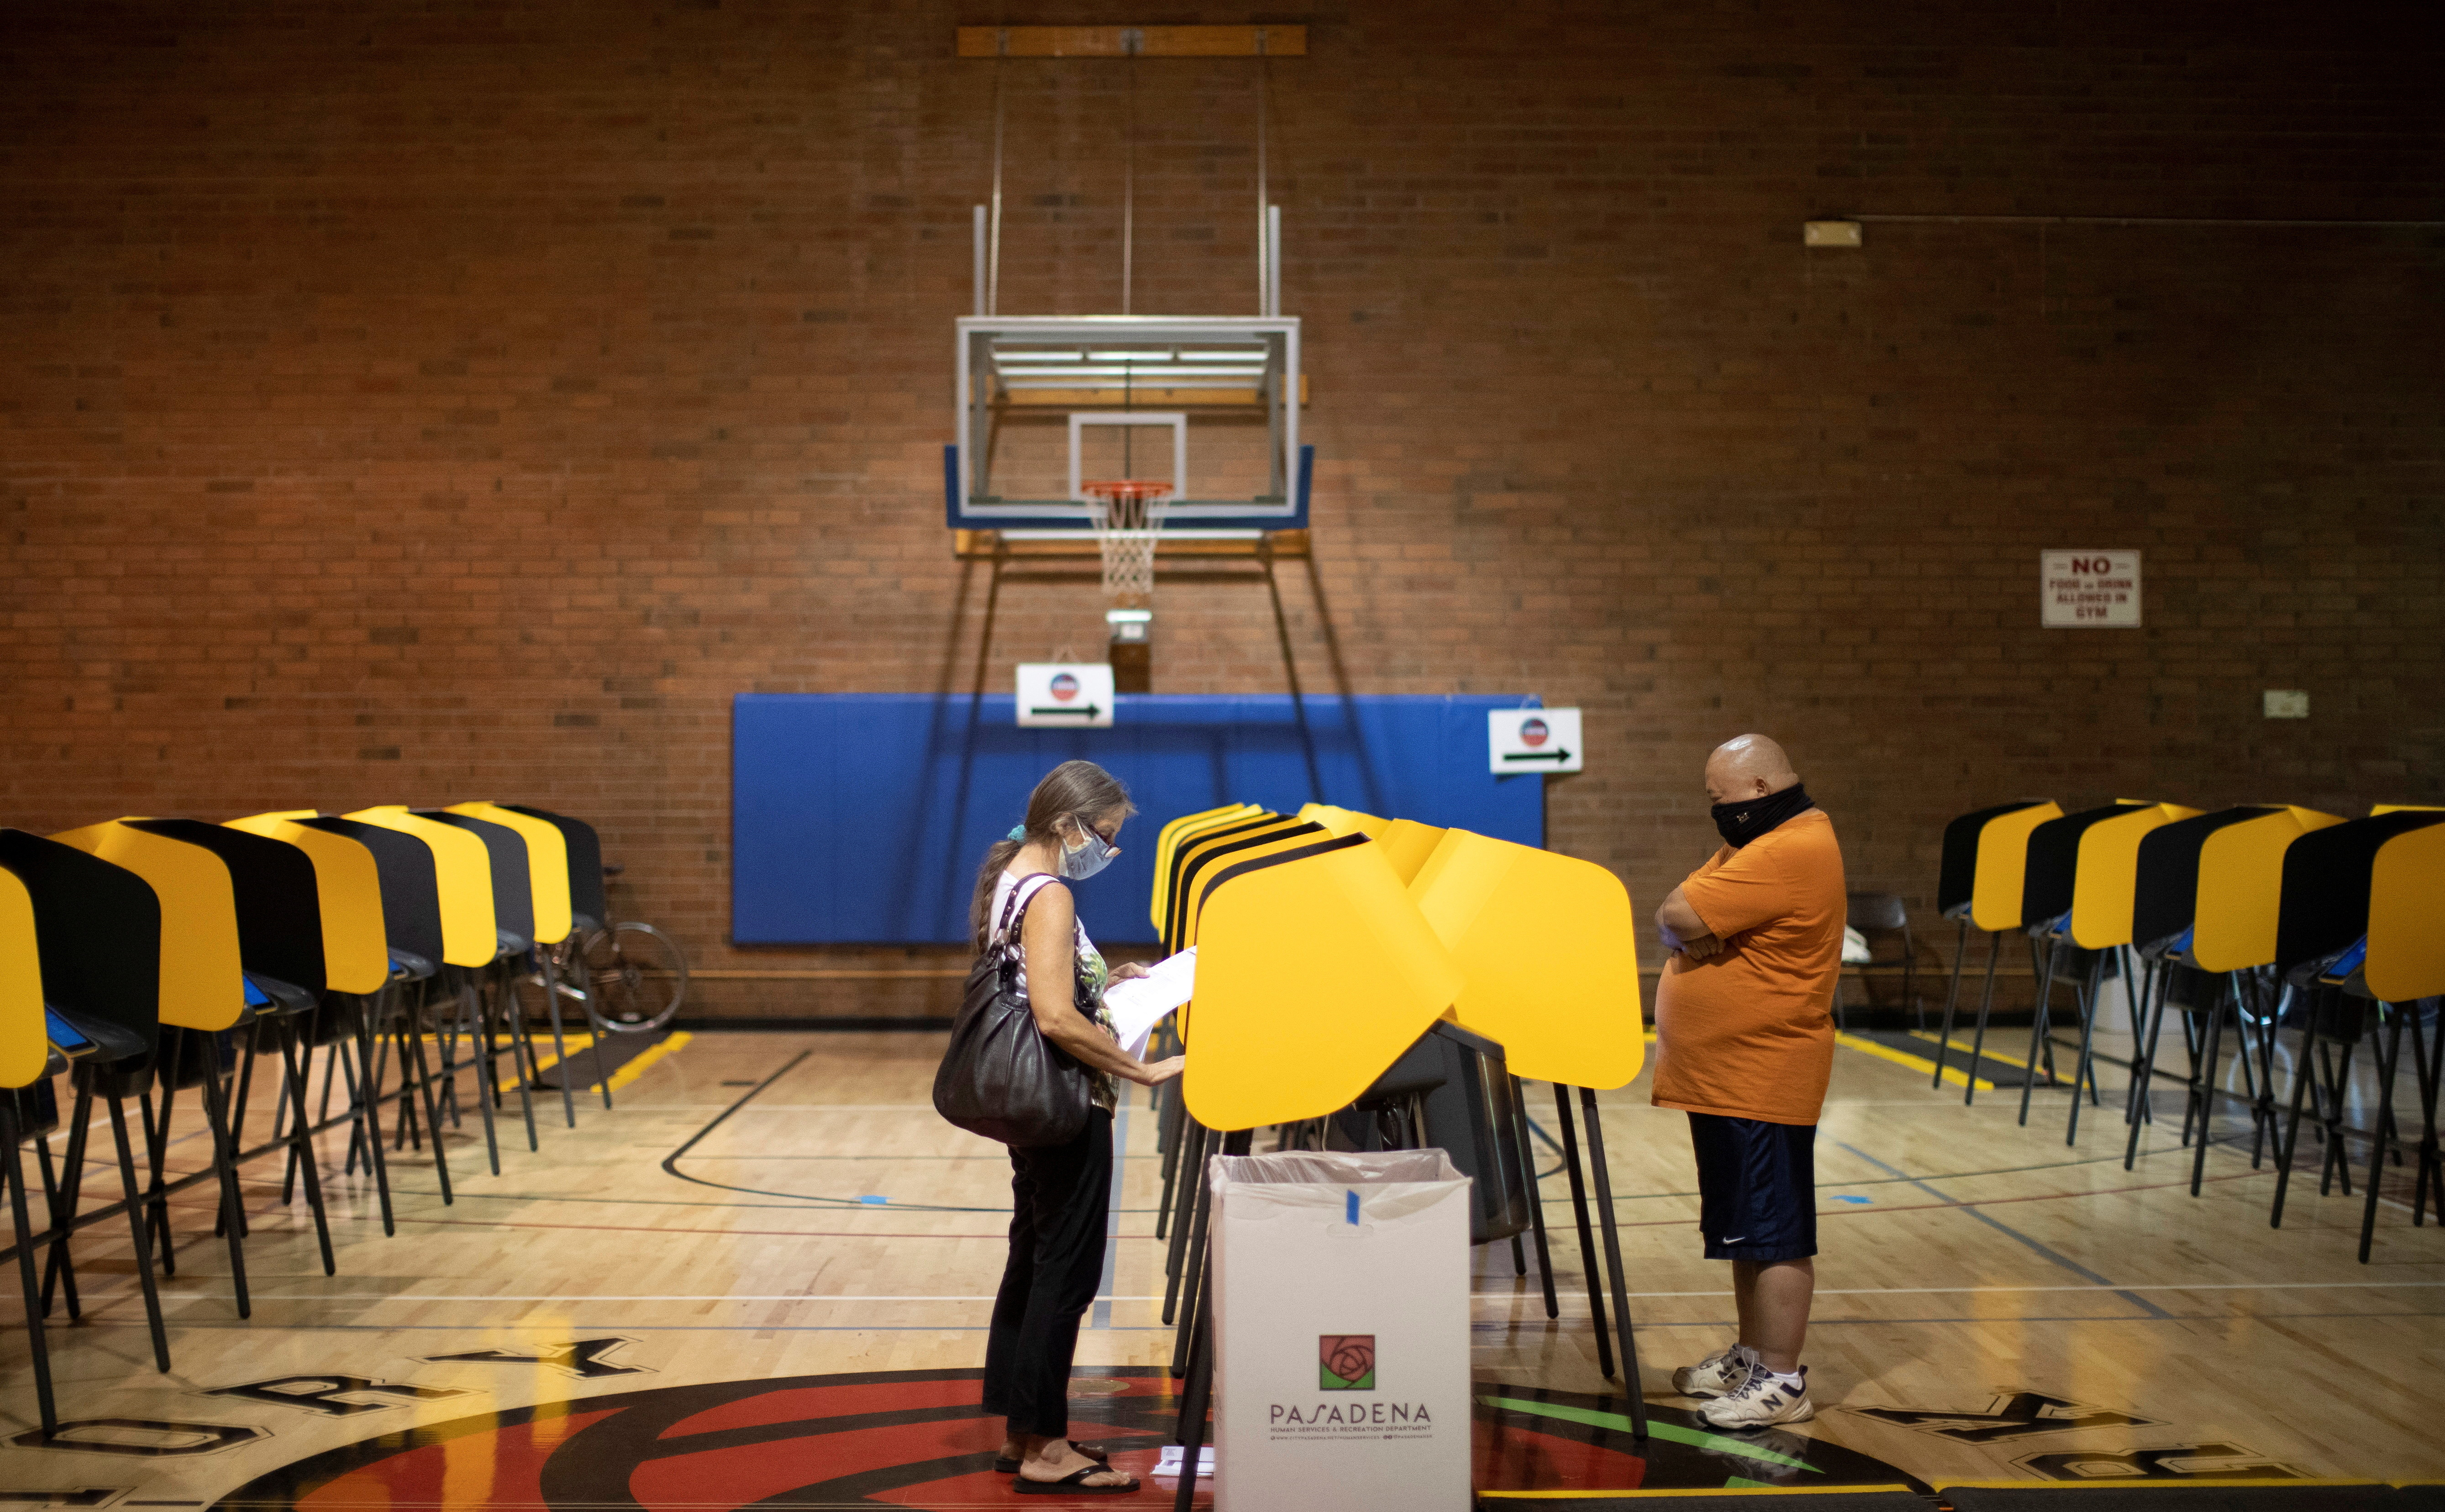 People vote during the U.S. presidential election in the gymnasium of the Victory Park Recreation Center during the outbreak of the coronavirus disease (COVID-19), in Pasadena, California, U.S., November 2, 2020. REUTERS/Mario Anzuoni - RC2HVJ919MIK